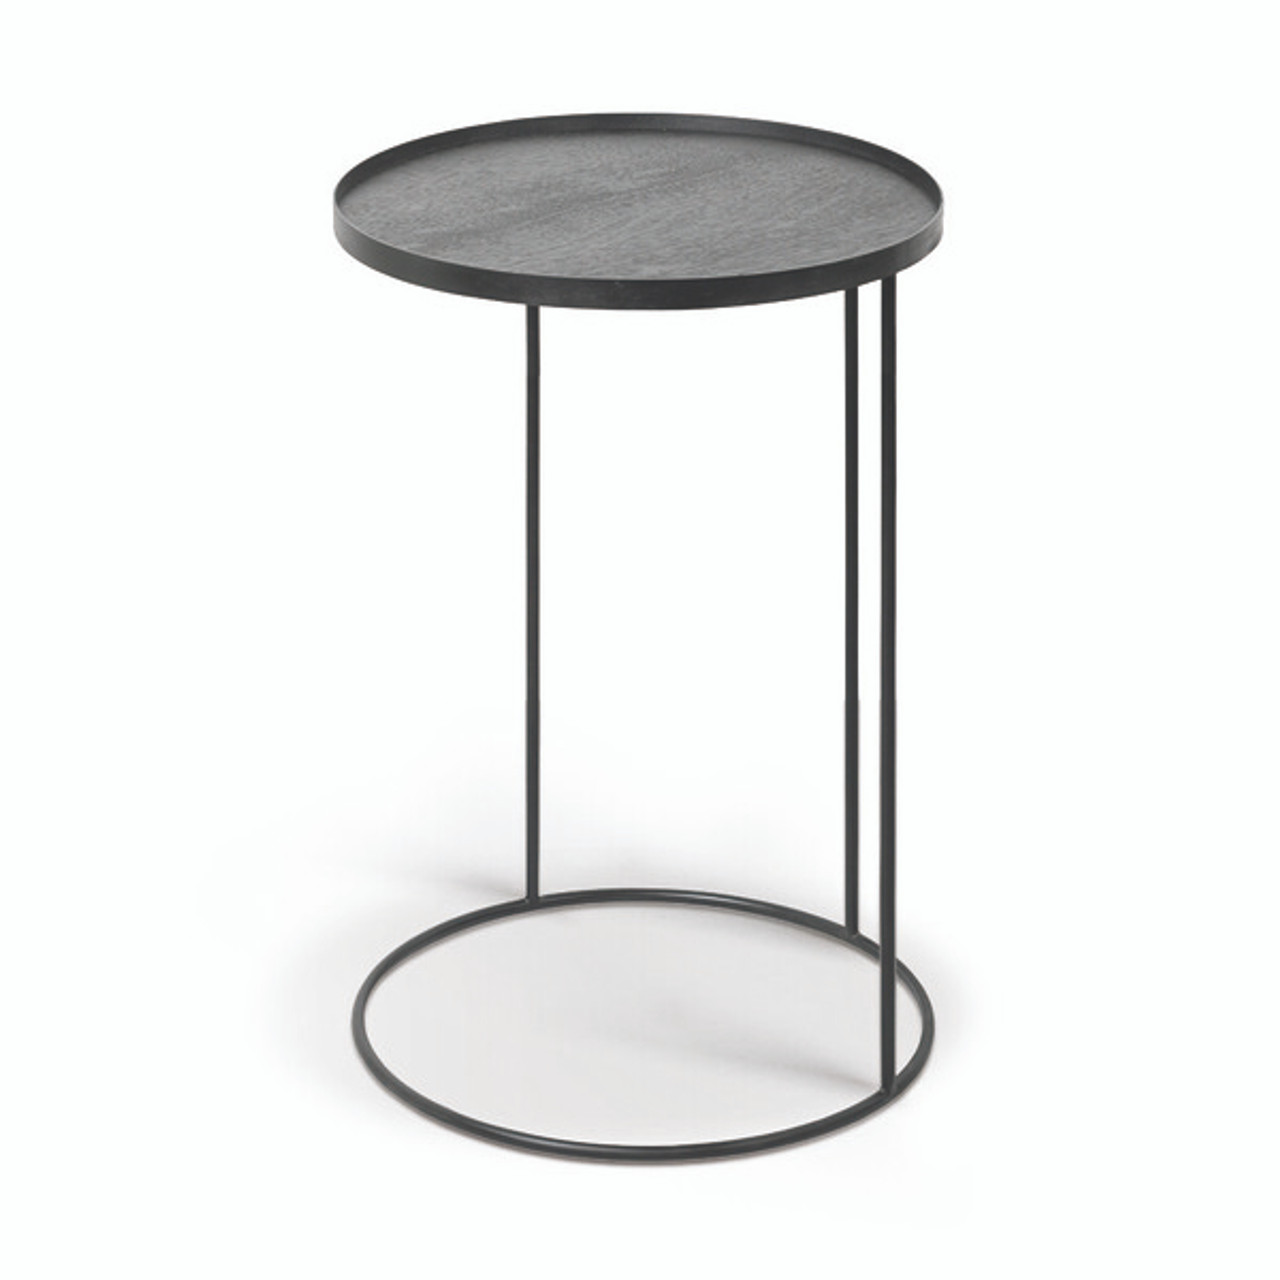 Round Tray Metal Frame Side Table Clutch Modern Free Shipping